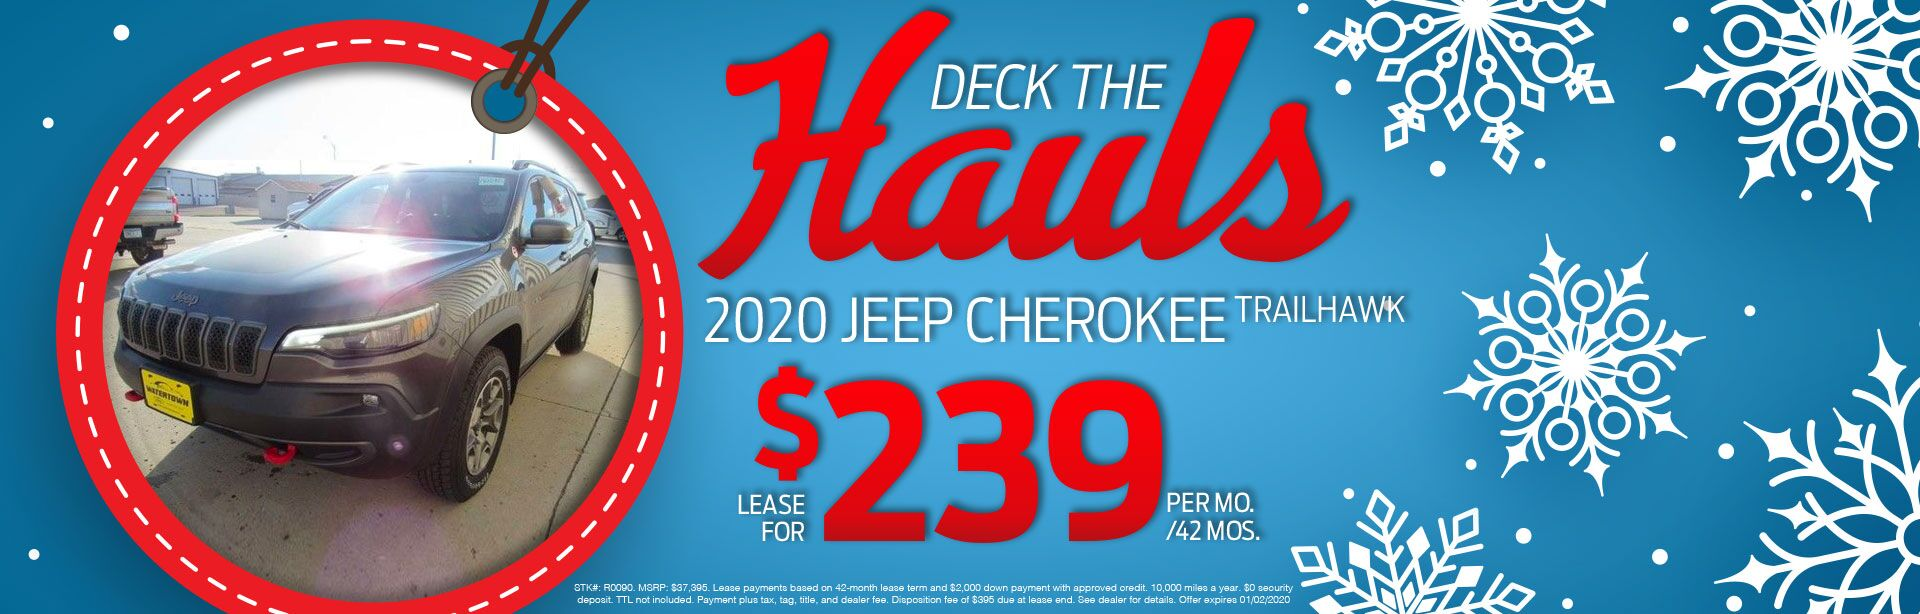 2020 Jeep Cherokee Trailhawk Lease for $239 Per Month For 42 Months